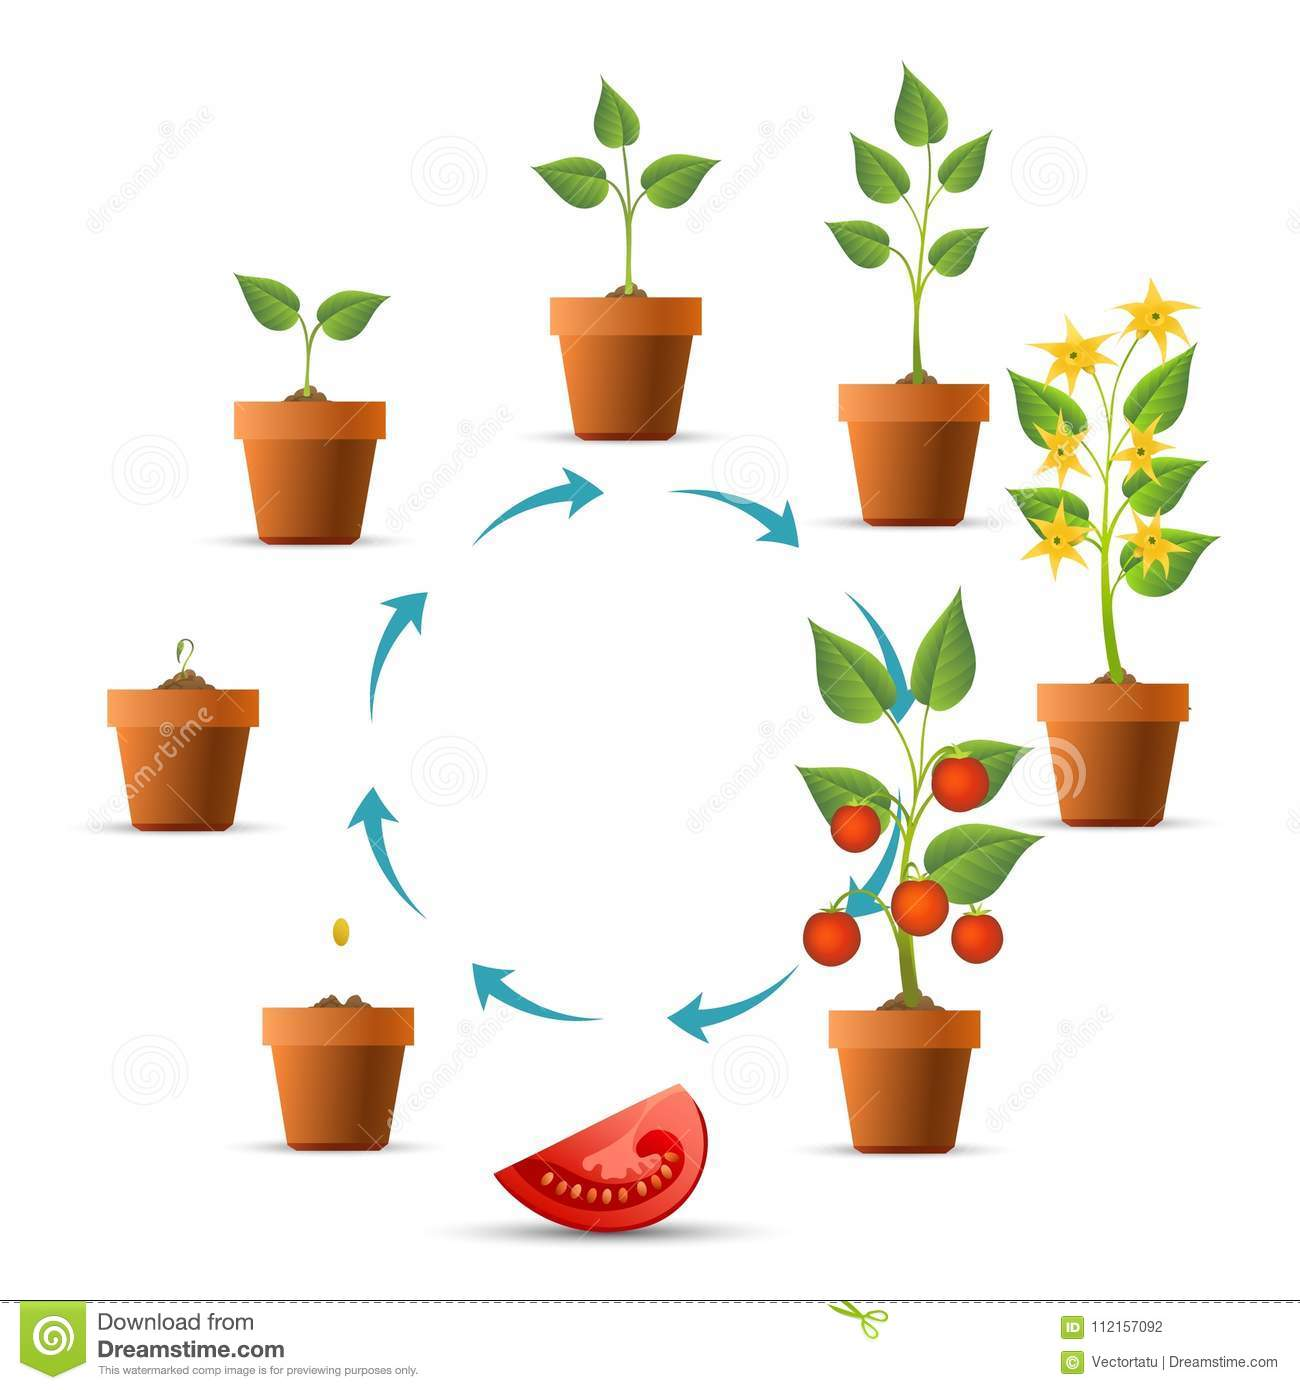 Tomato Plant Growing Cycle